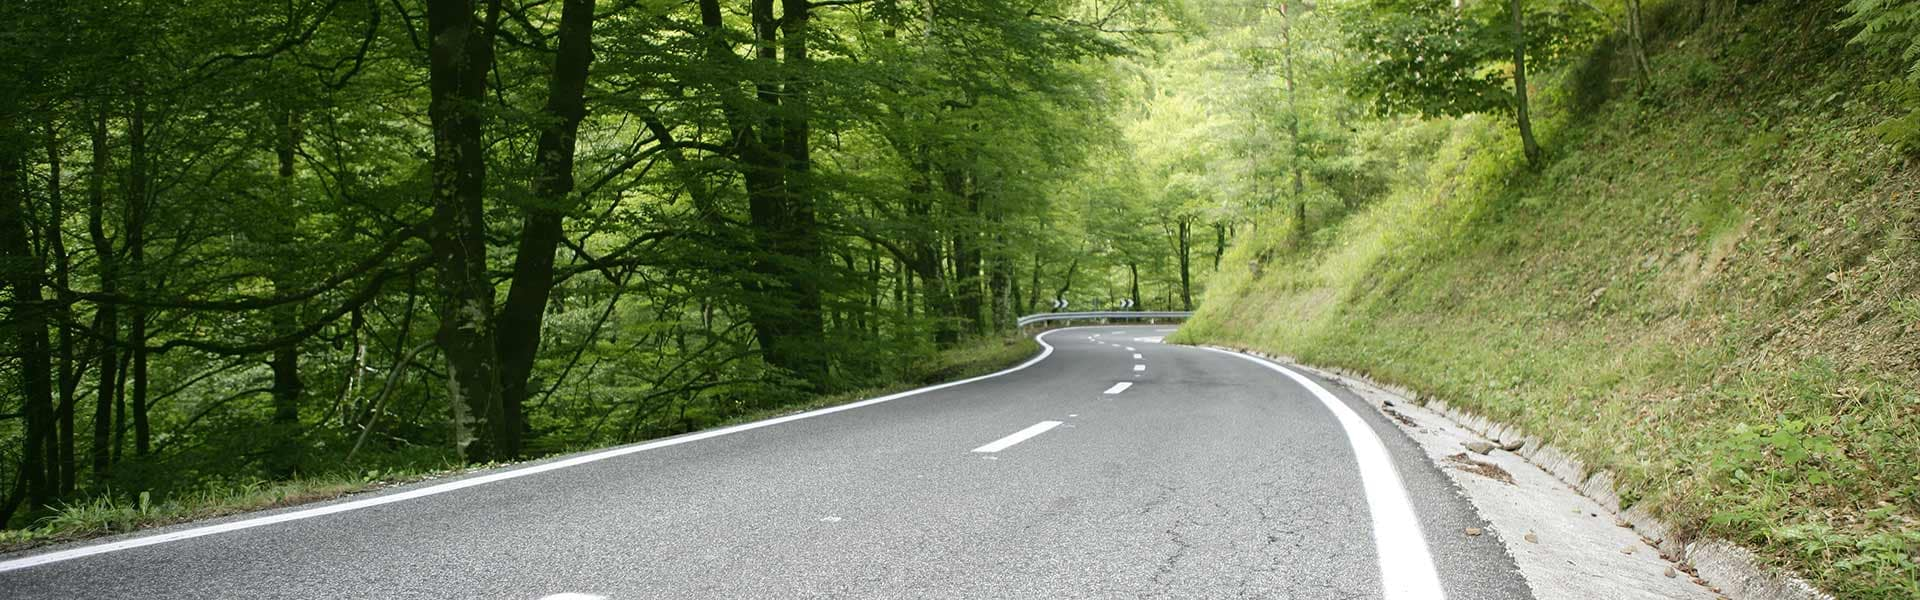 Forest Road Background